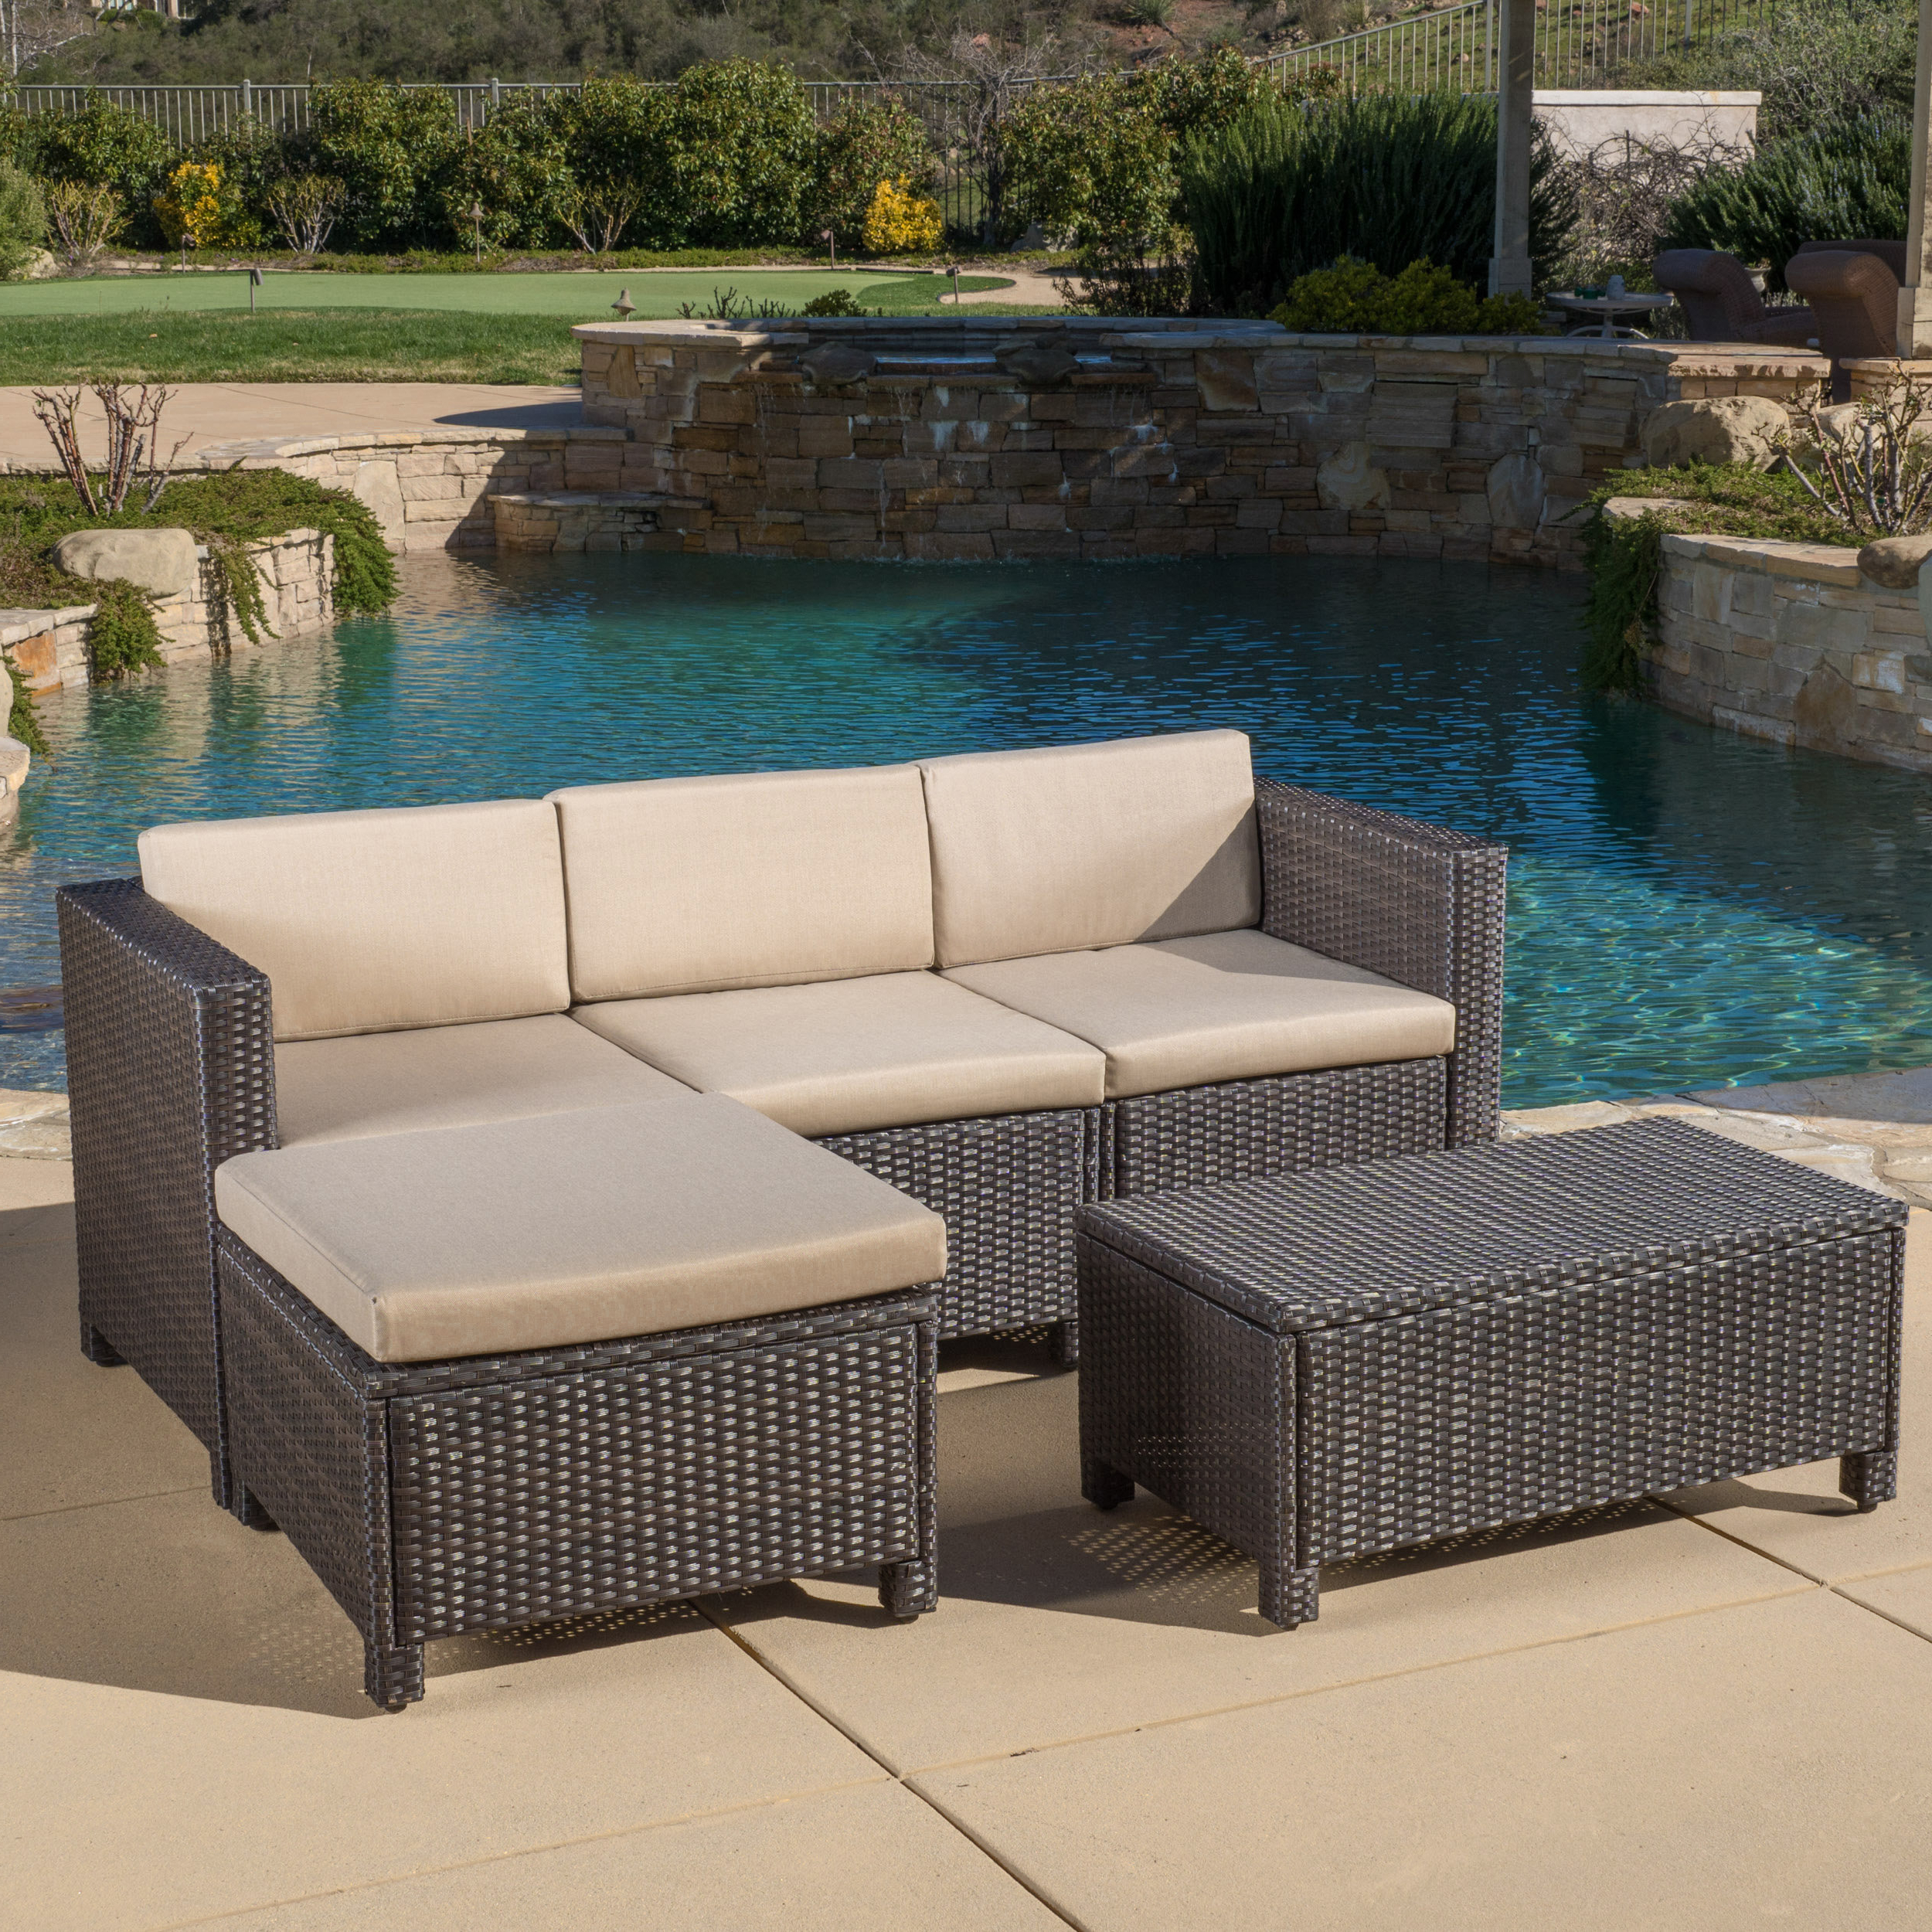 Latest Furst 5 Piece Sectional Seating Group With Cushions Regarding Furst Patio Sofas With Cushion (View 12 of 20)